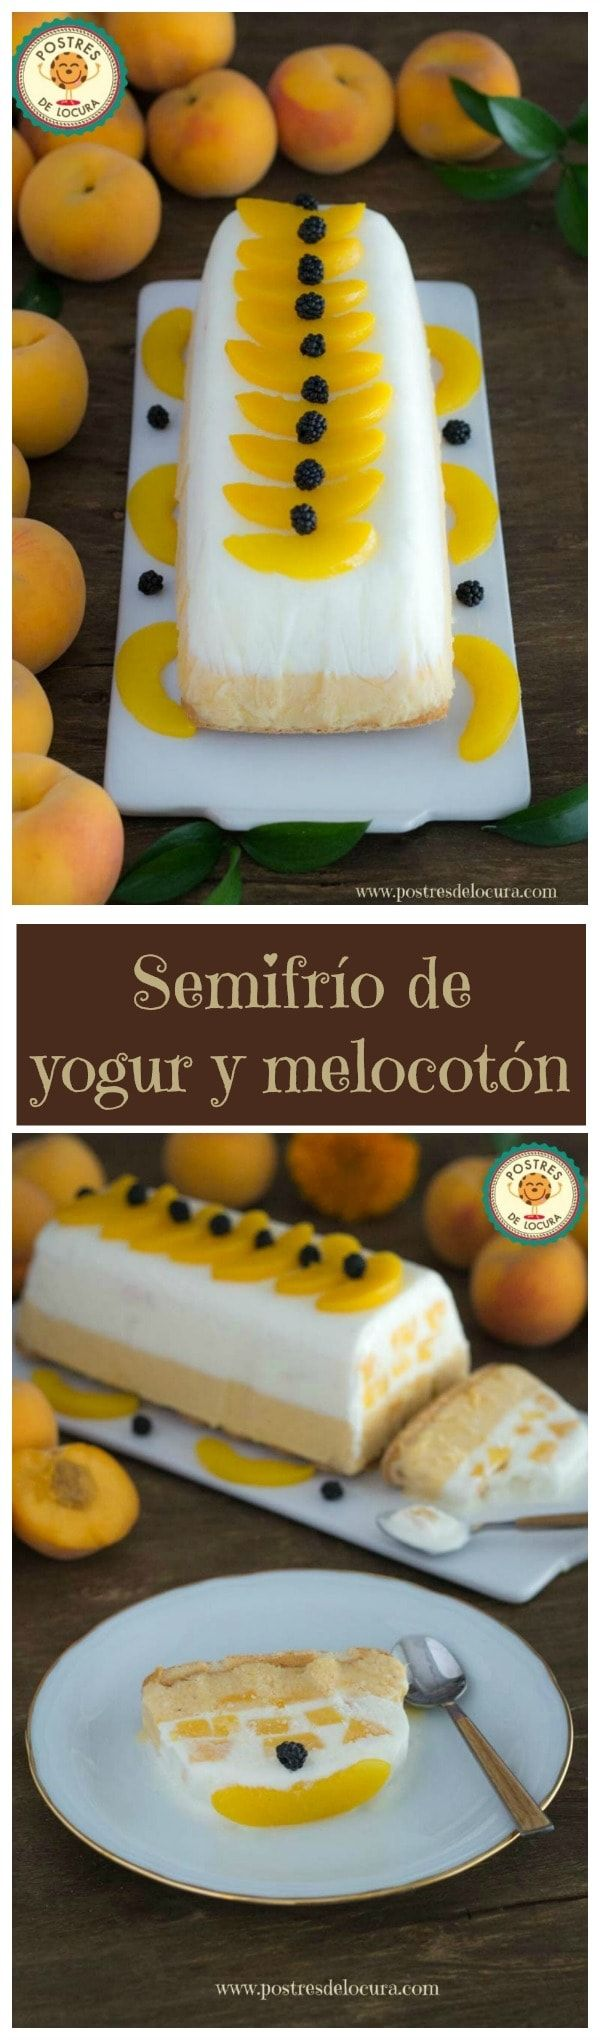 Collage Semifrio de yogur y melocoton